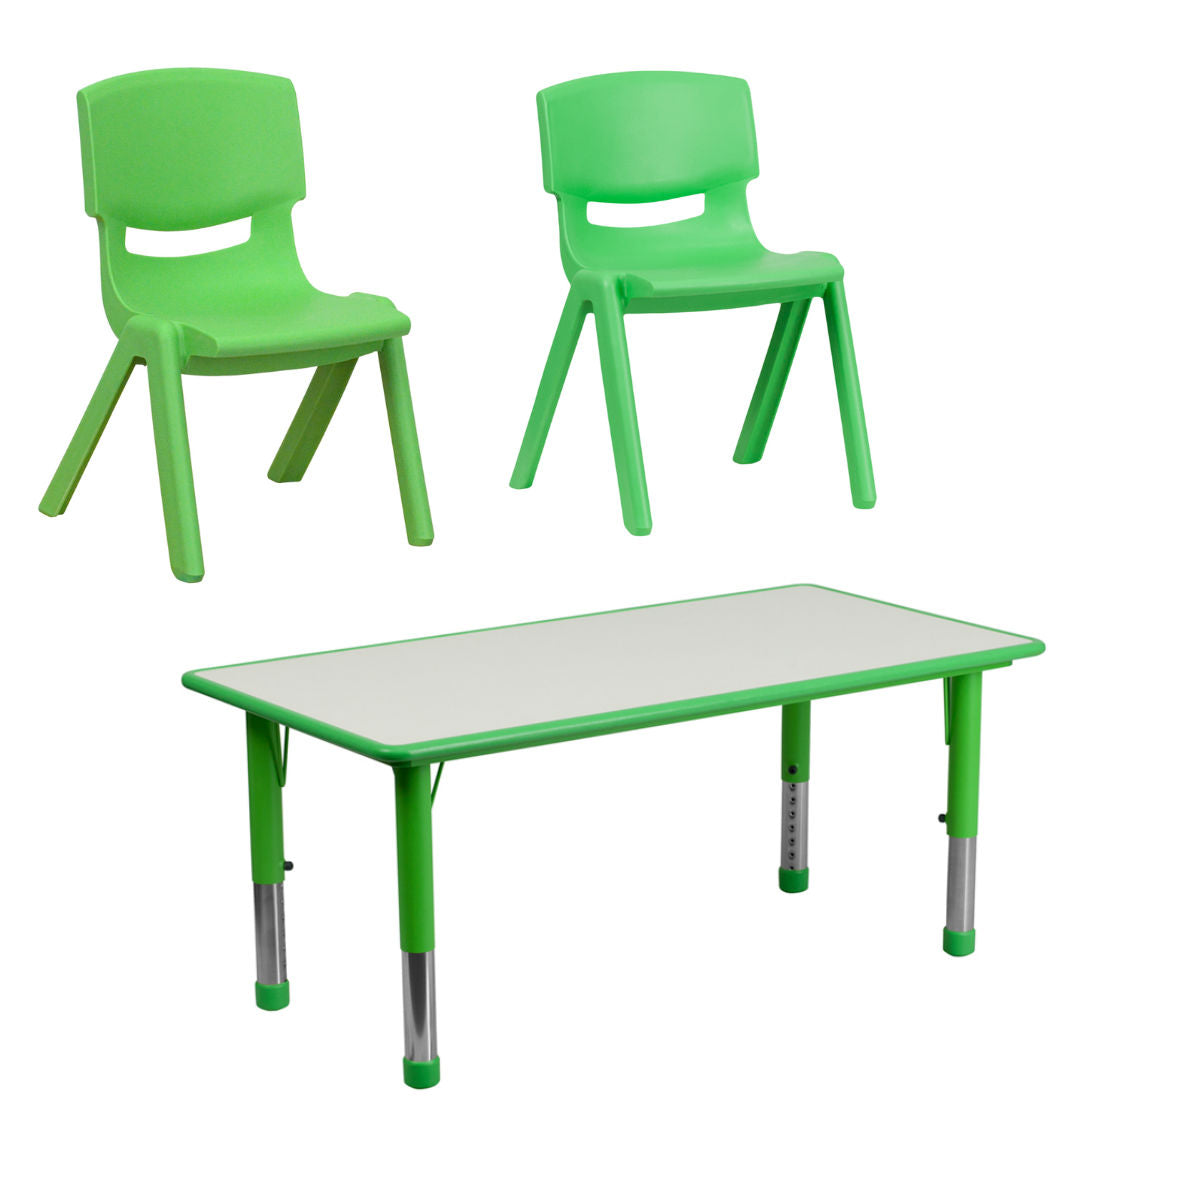 "Flash Furniture Rectangular Green and Gray Plastic Height Adjustable Activity Table with 13.25'' and 10.5"" Seat Height Plastic Stackable School Chair"